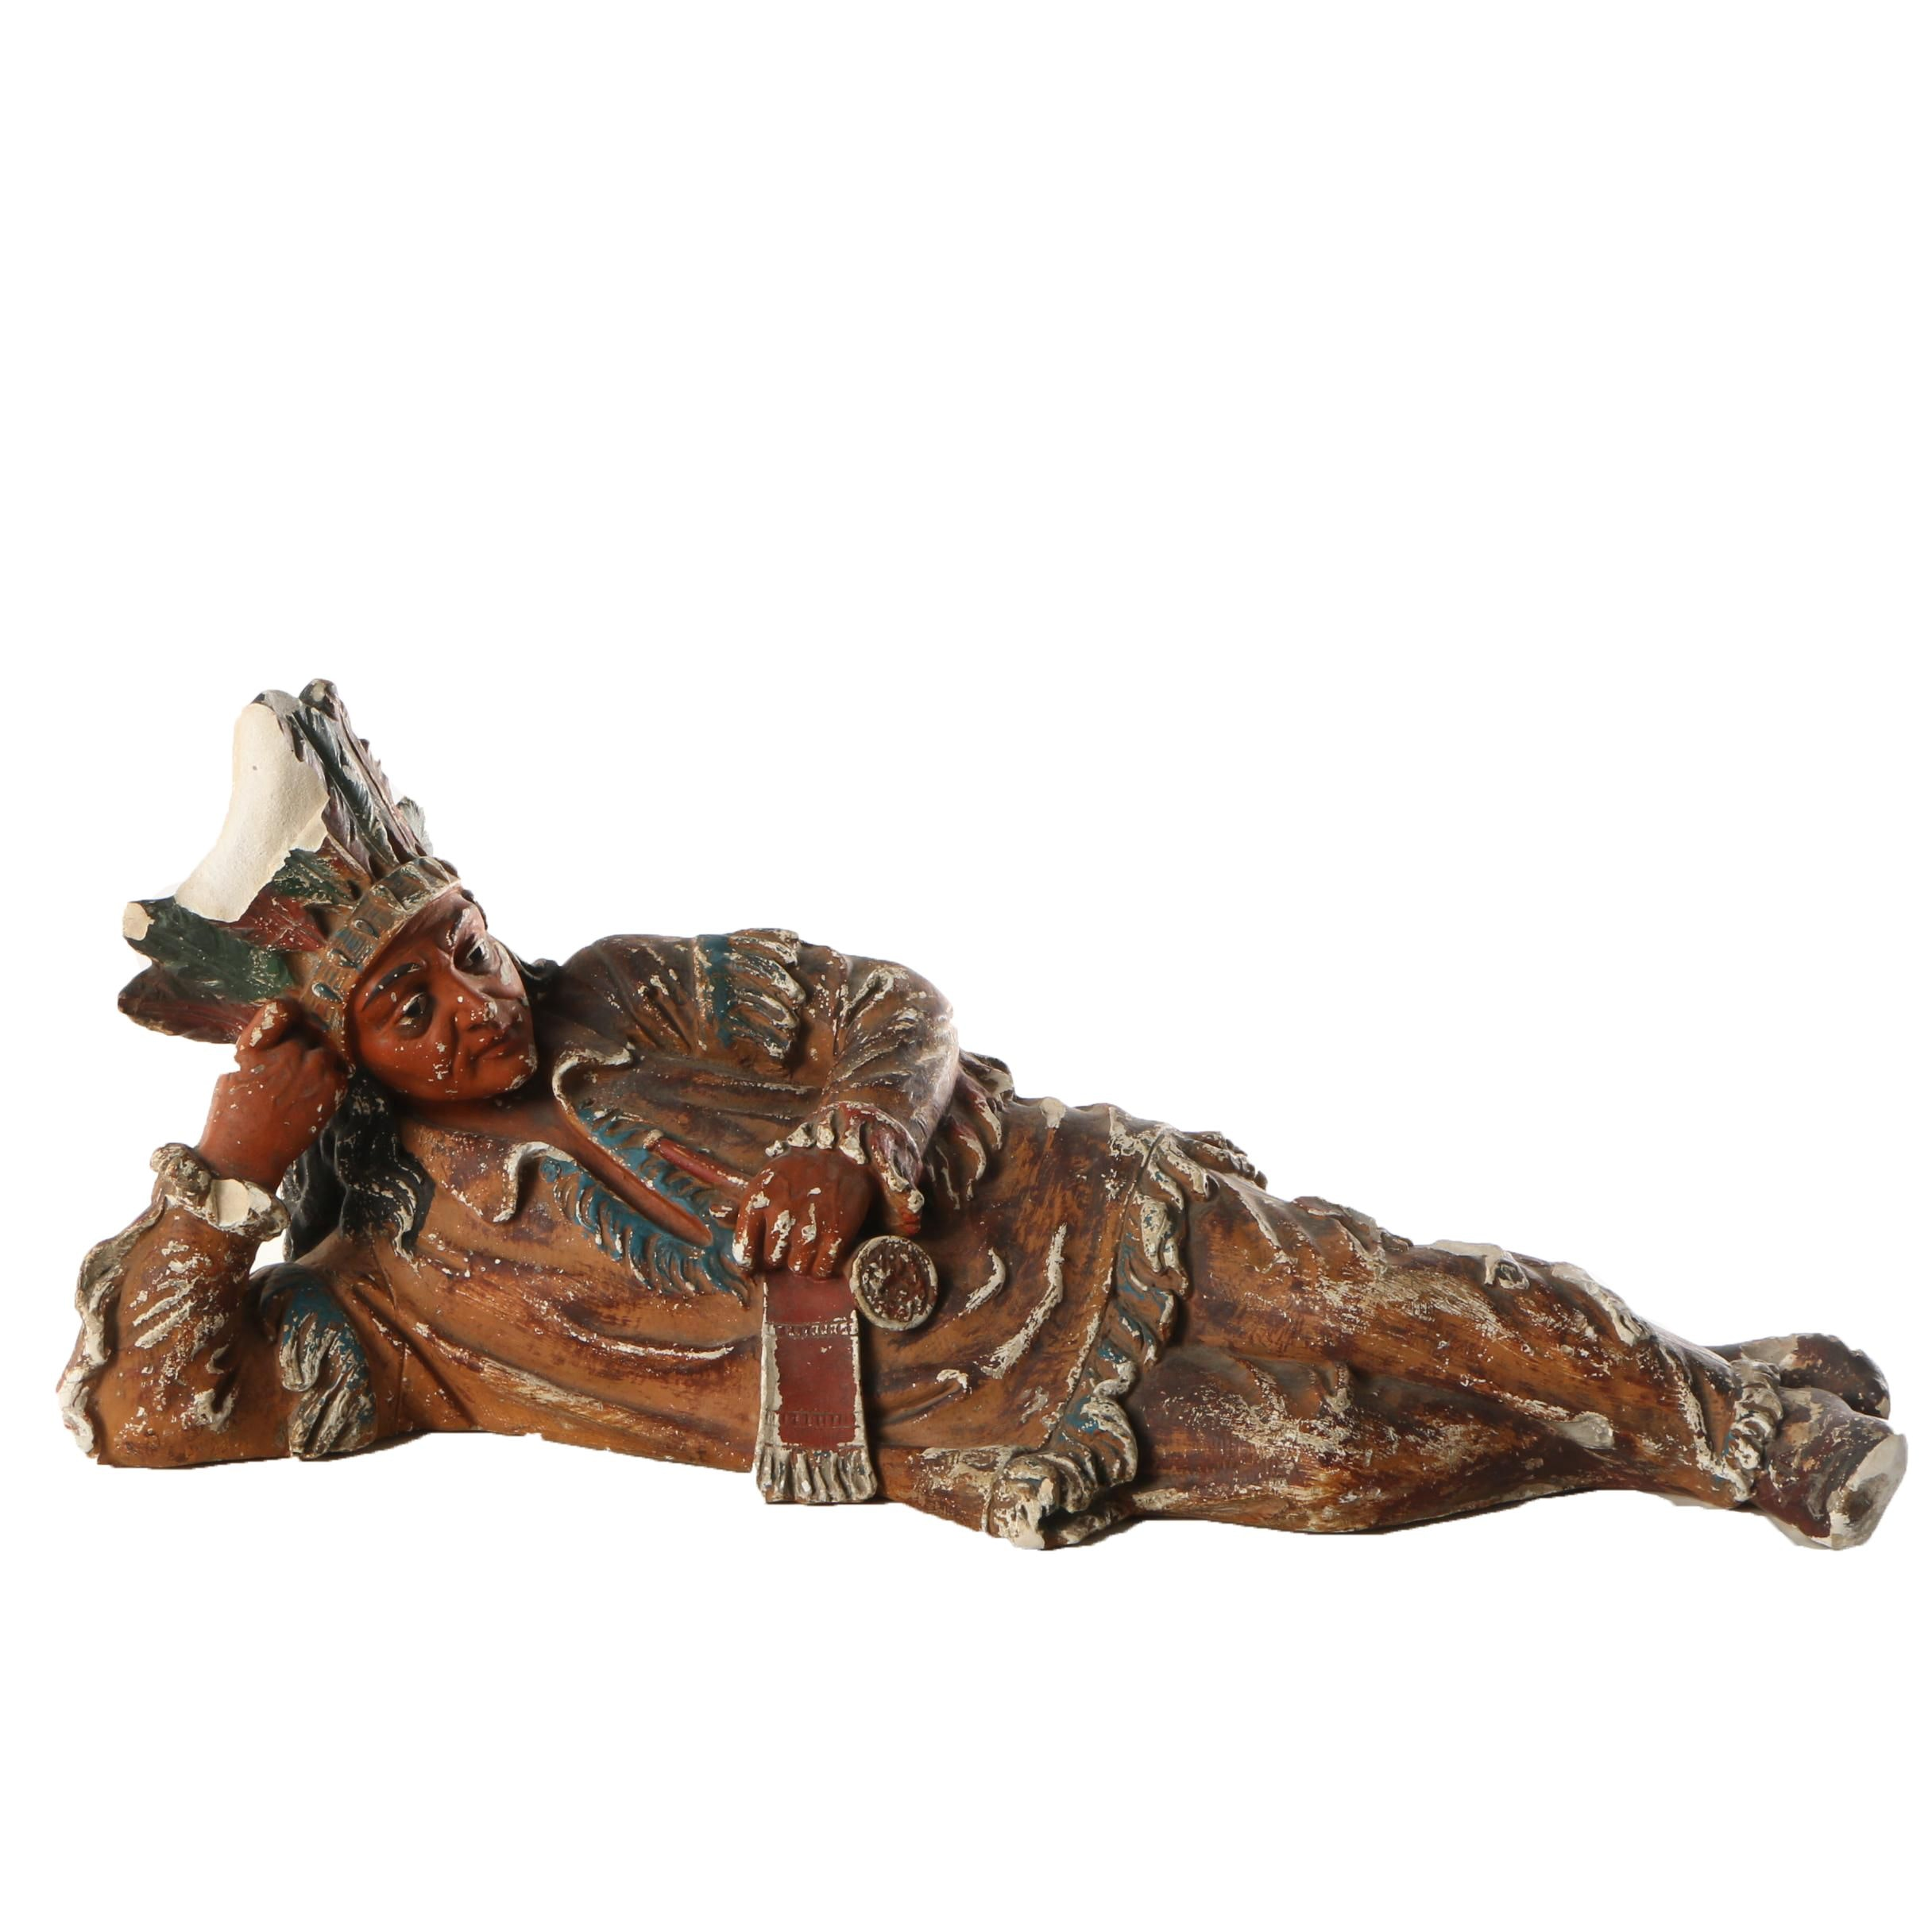 Vintage Chalkware Reclining Native American Inspired Figure